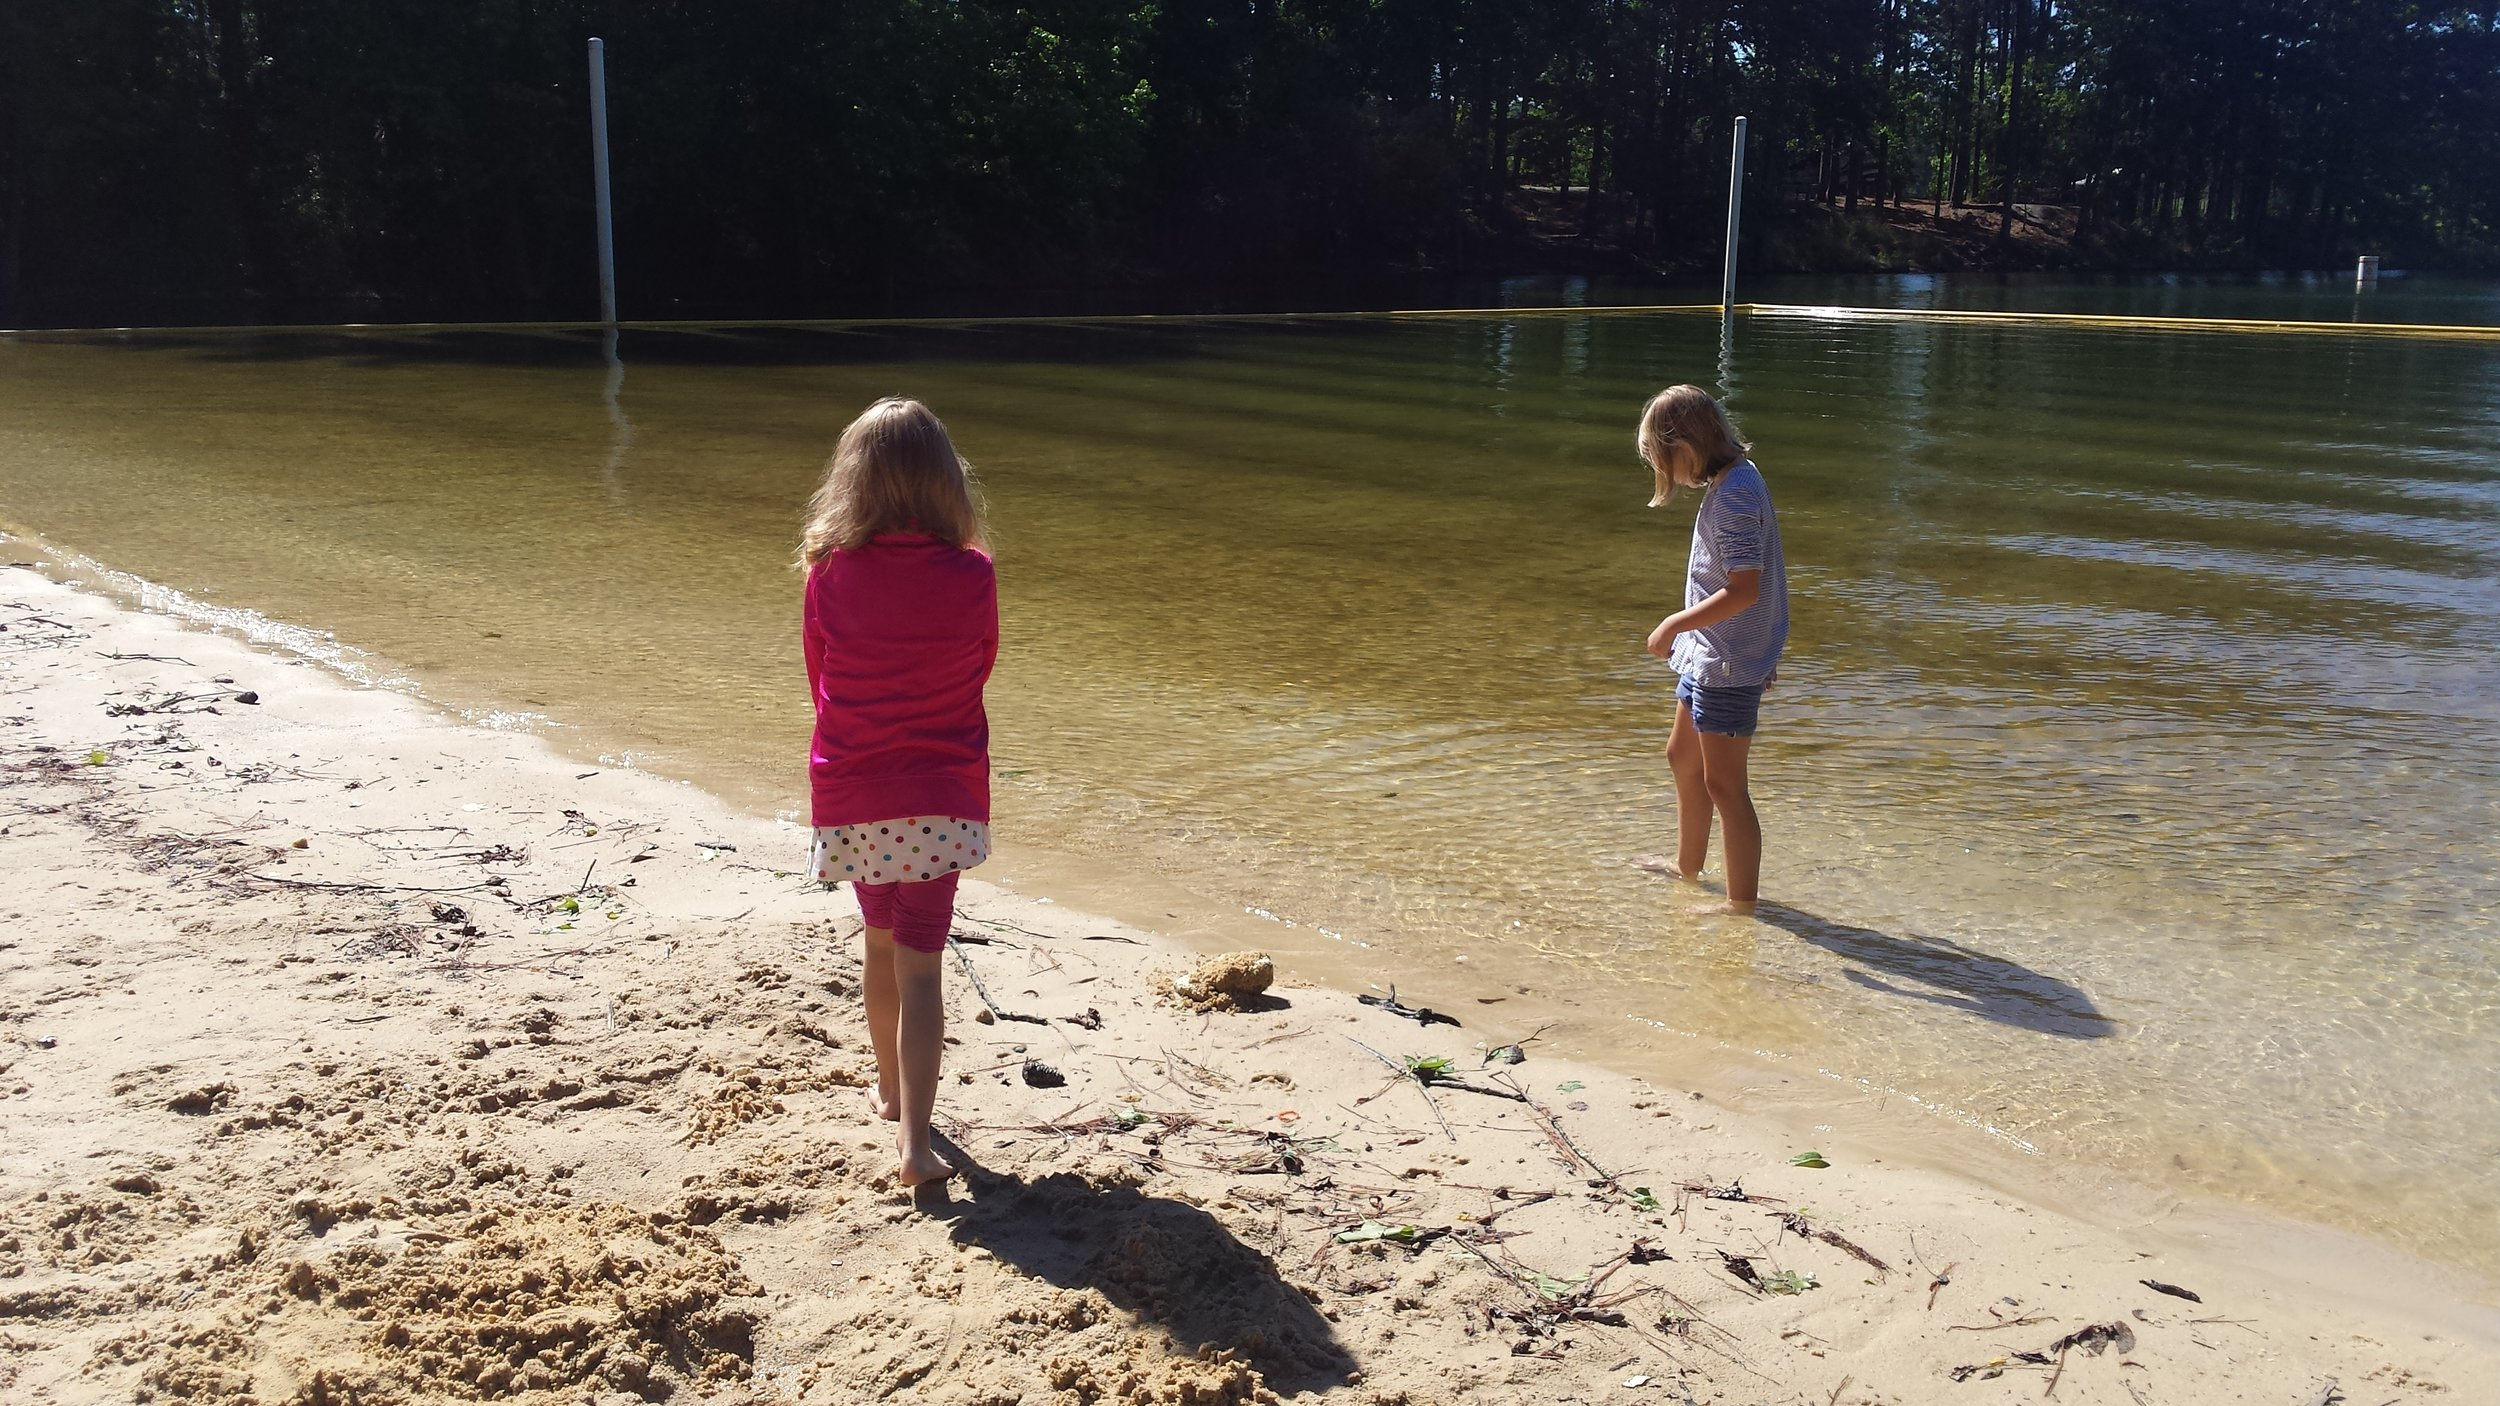 Kids like the beach even if it is rainy and cool. The sun made a brief appearance for us!